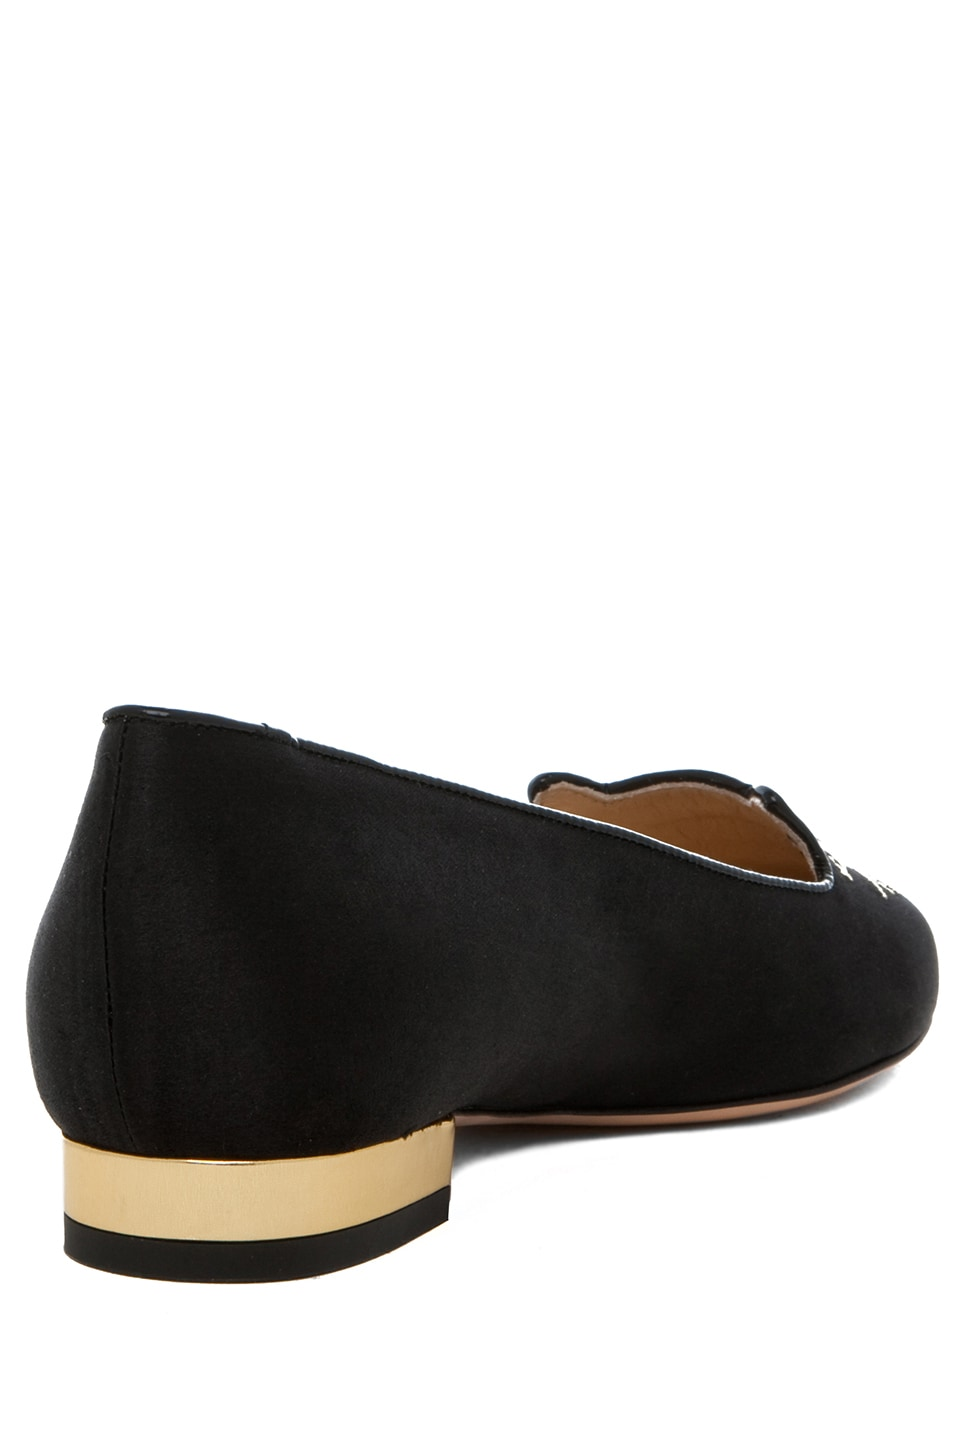 Image 3 of Charlotte Olympia Kitty Satin Flats in Black & Gold